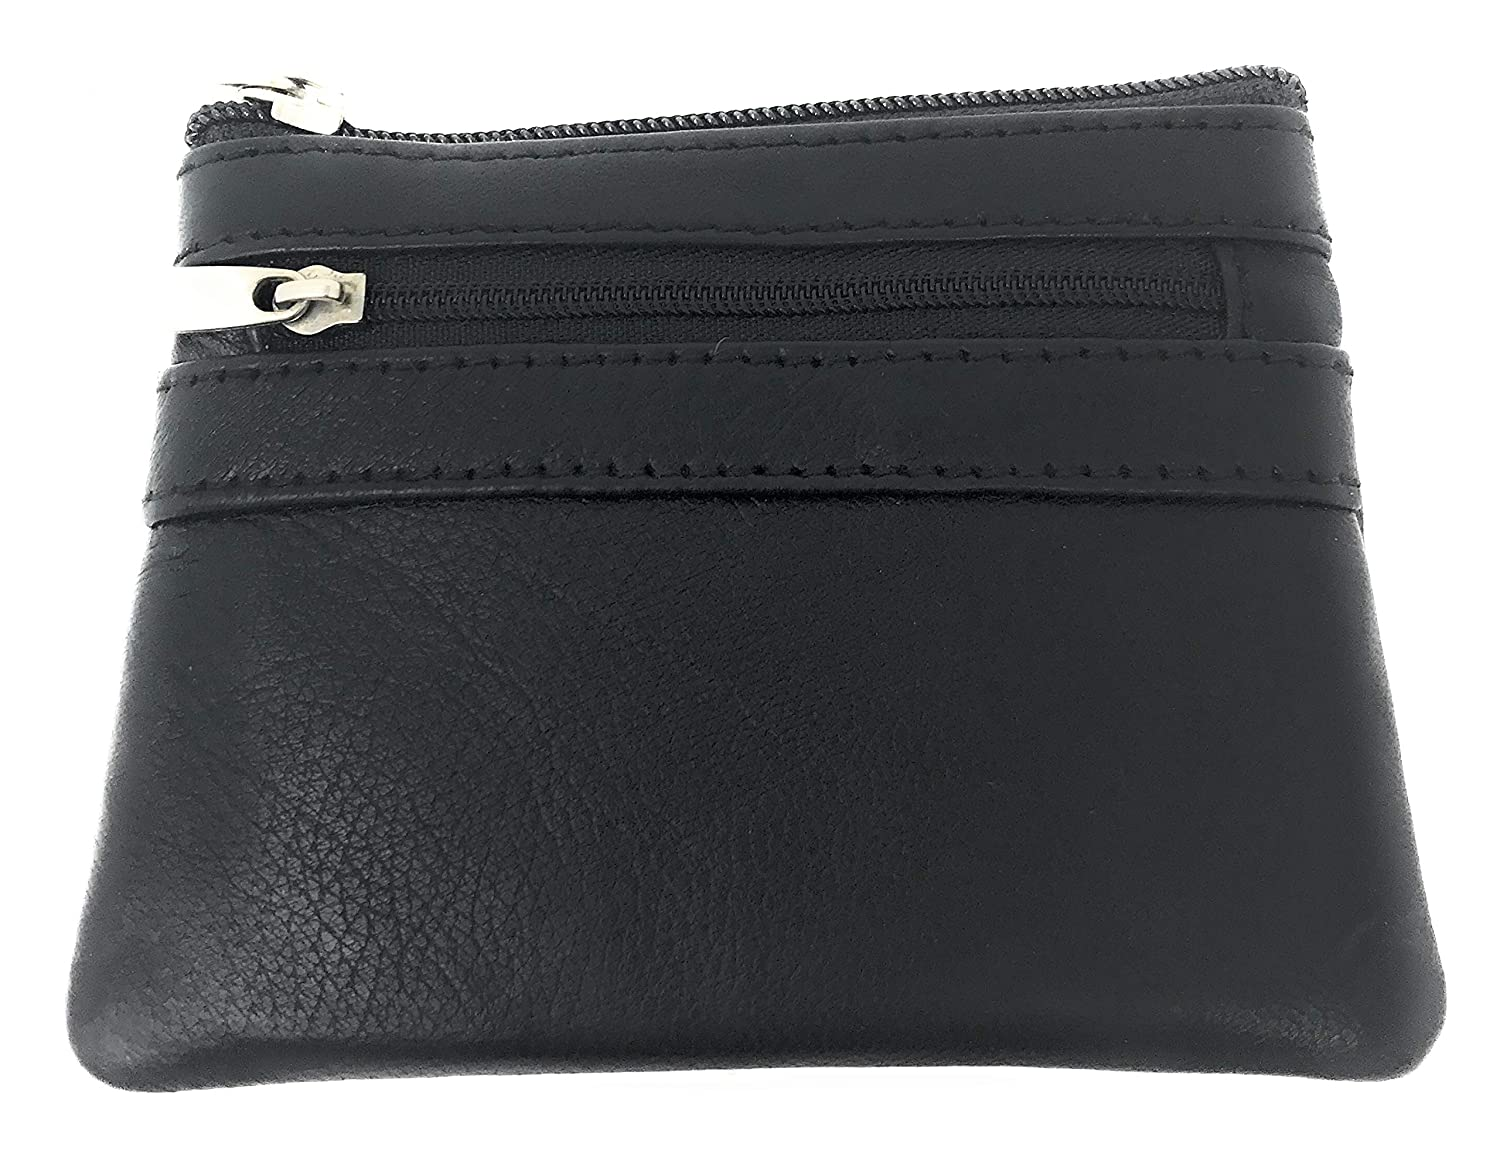 E Elton Women's Genuine Leather Coin Purse Multi Pouch Wallet with ID Holder, Key Ring Black